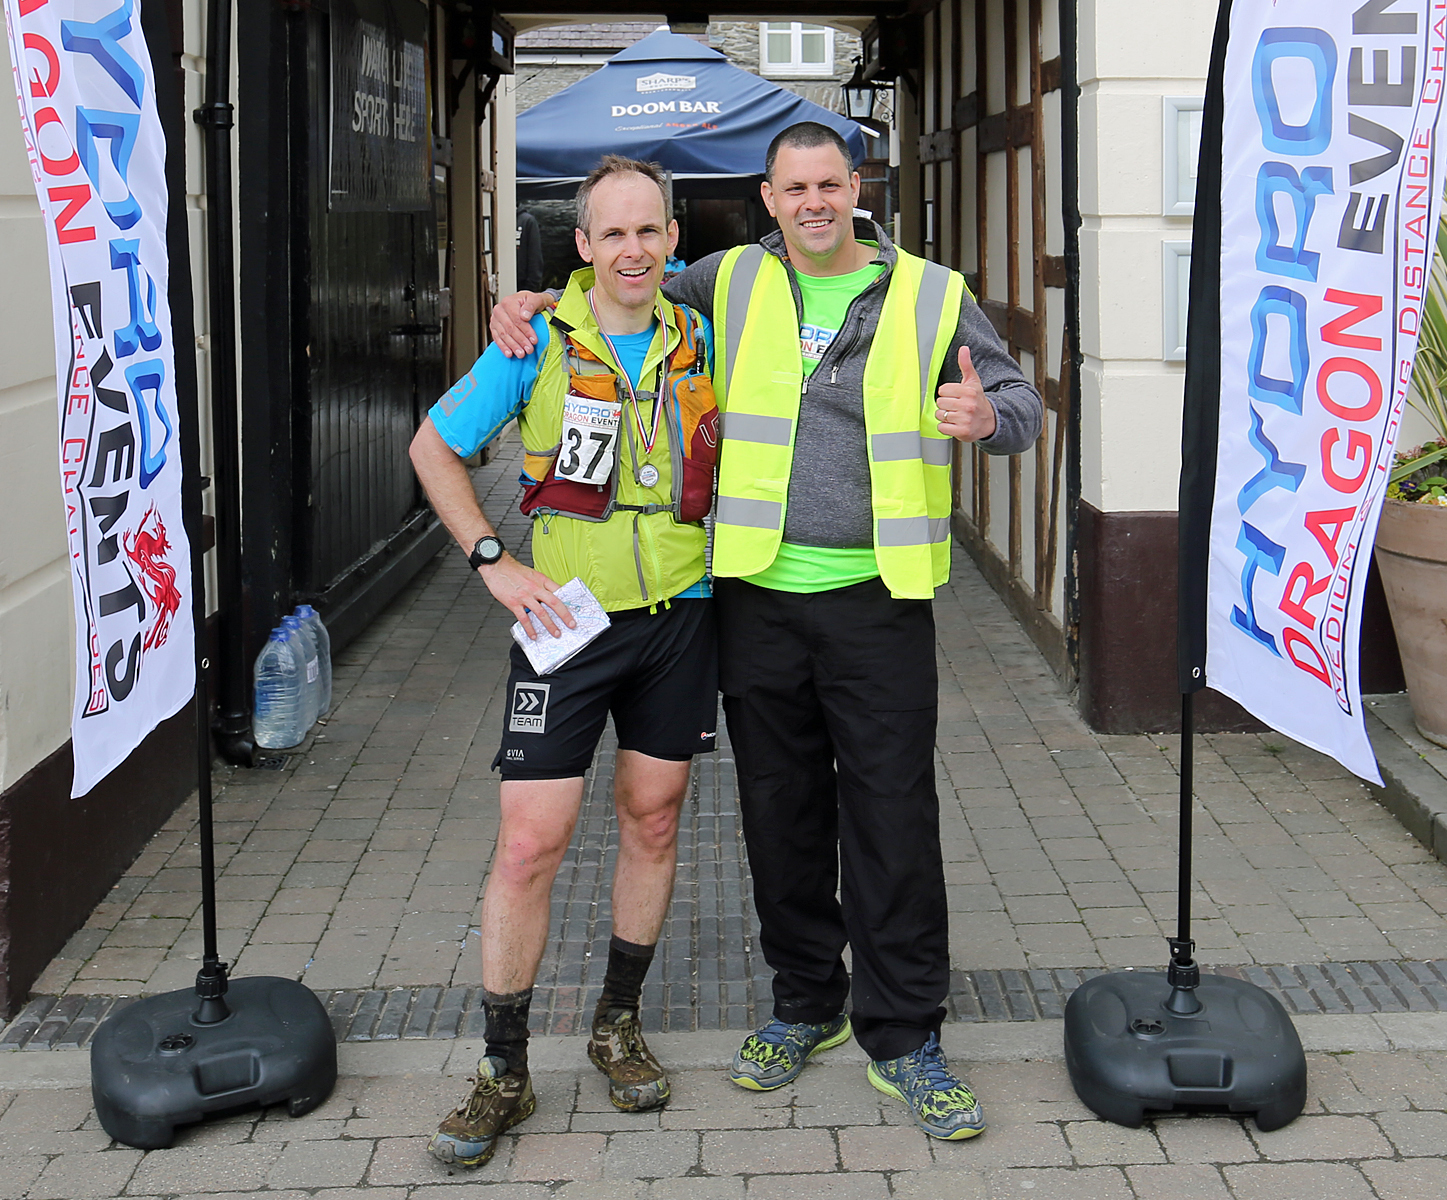 First to the finishof the Hydro Dragon event was Gary Davies from Cardiff, pictured with David Maund, event organiser. PICTURE: Barry Adams